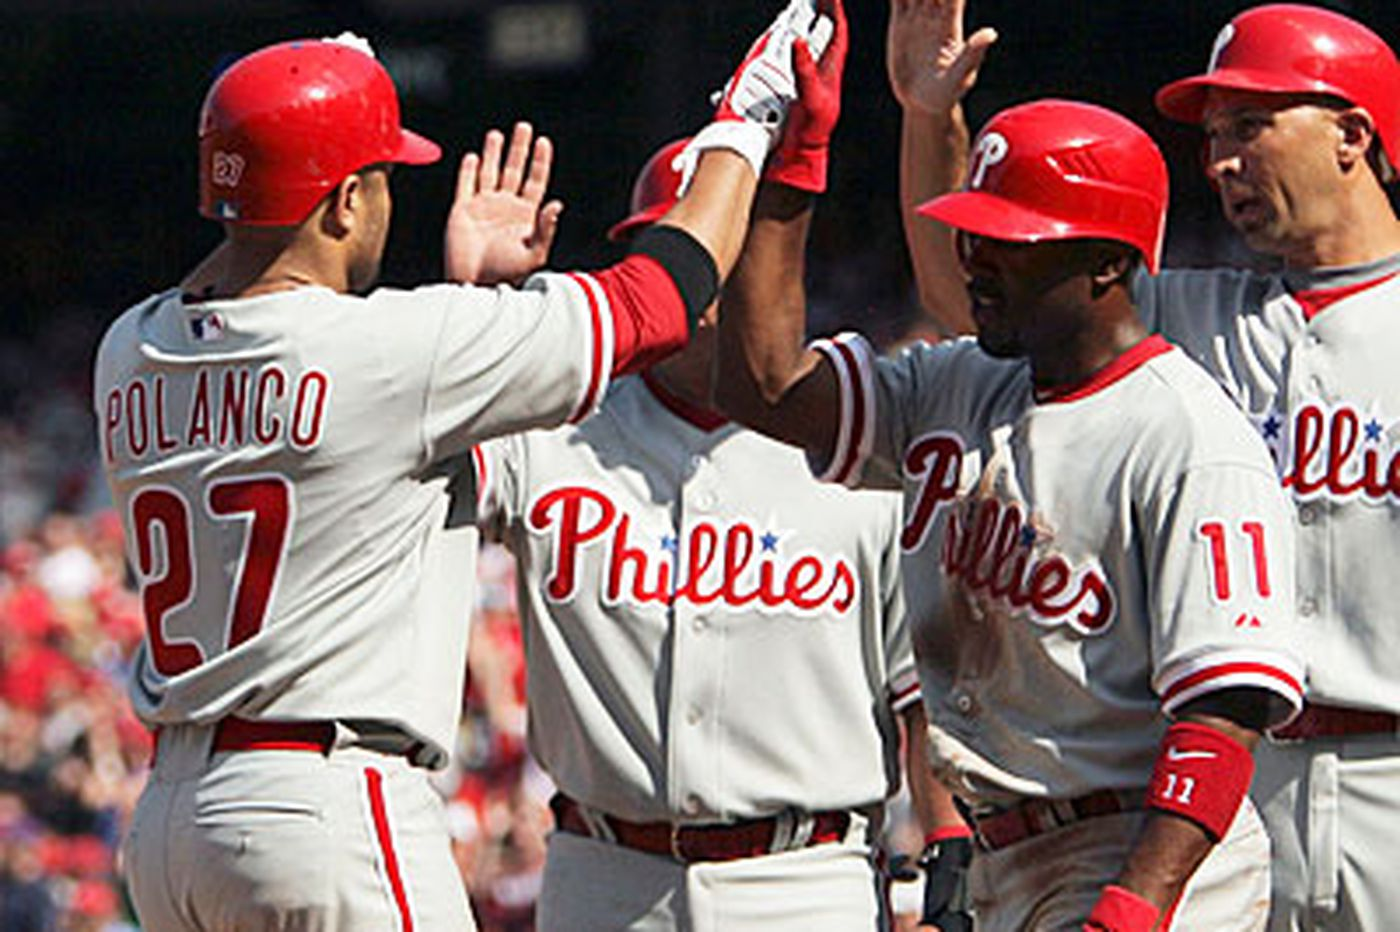 Polanco settles in nicely with Phillies